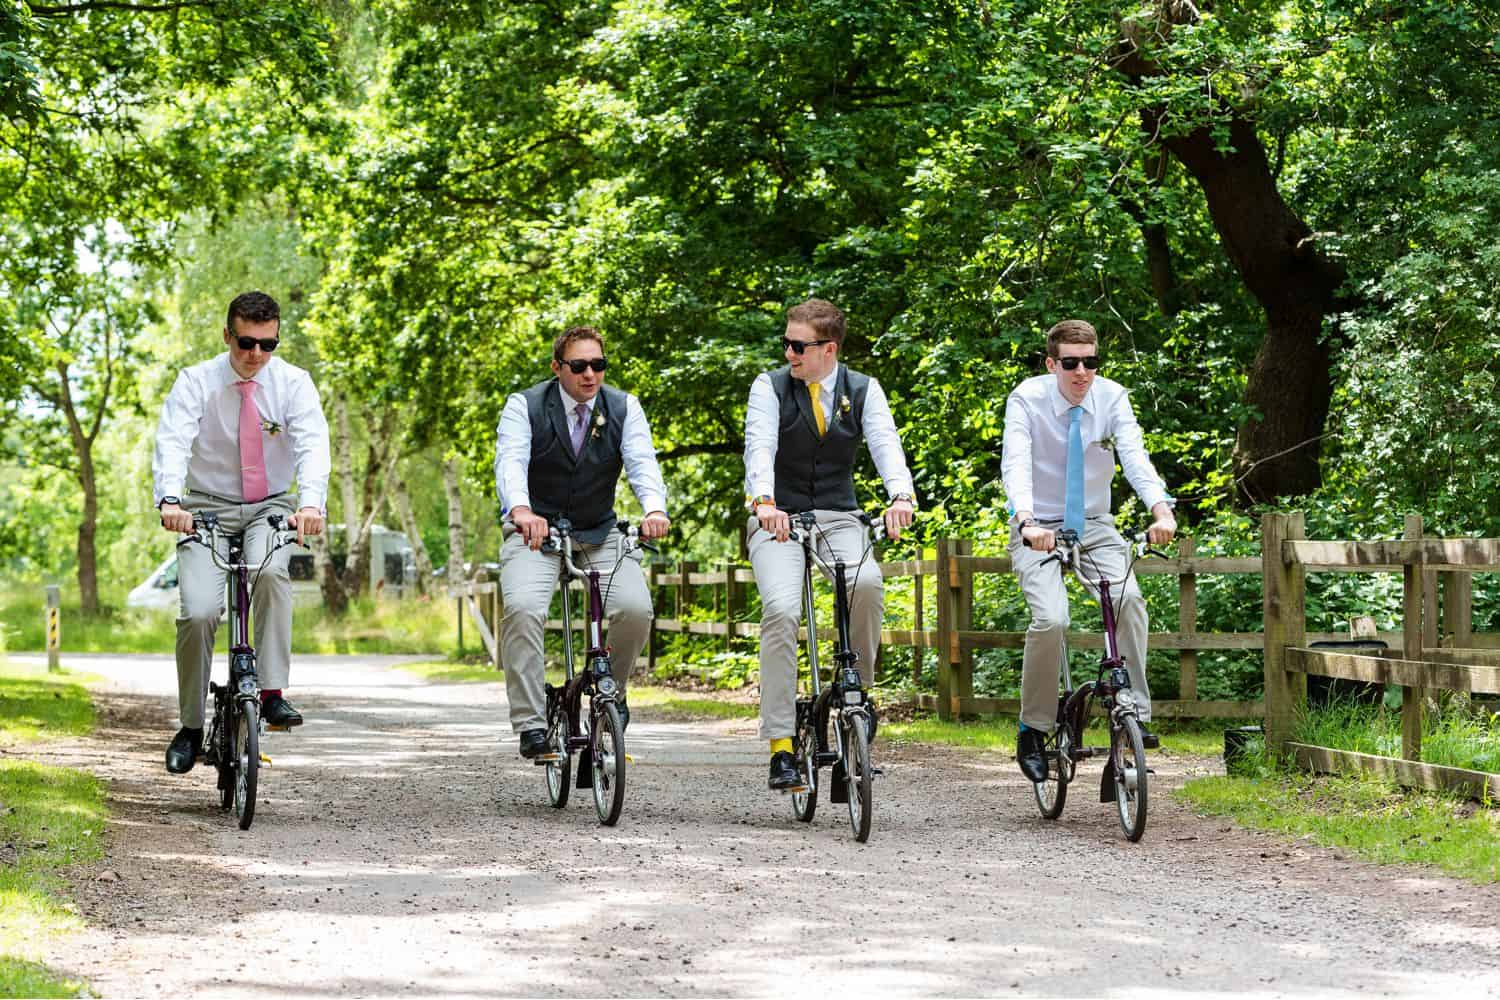 Groomsmen ride bicycles down a gravel path on the wedding day